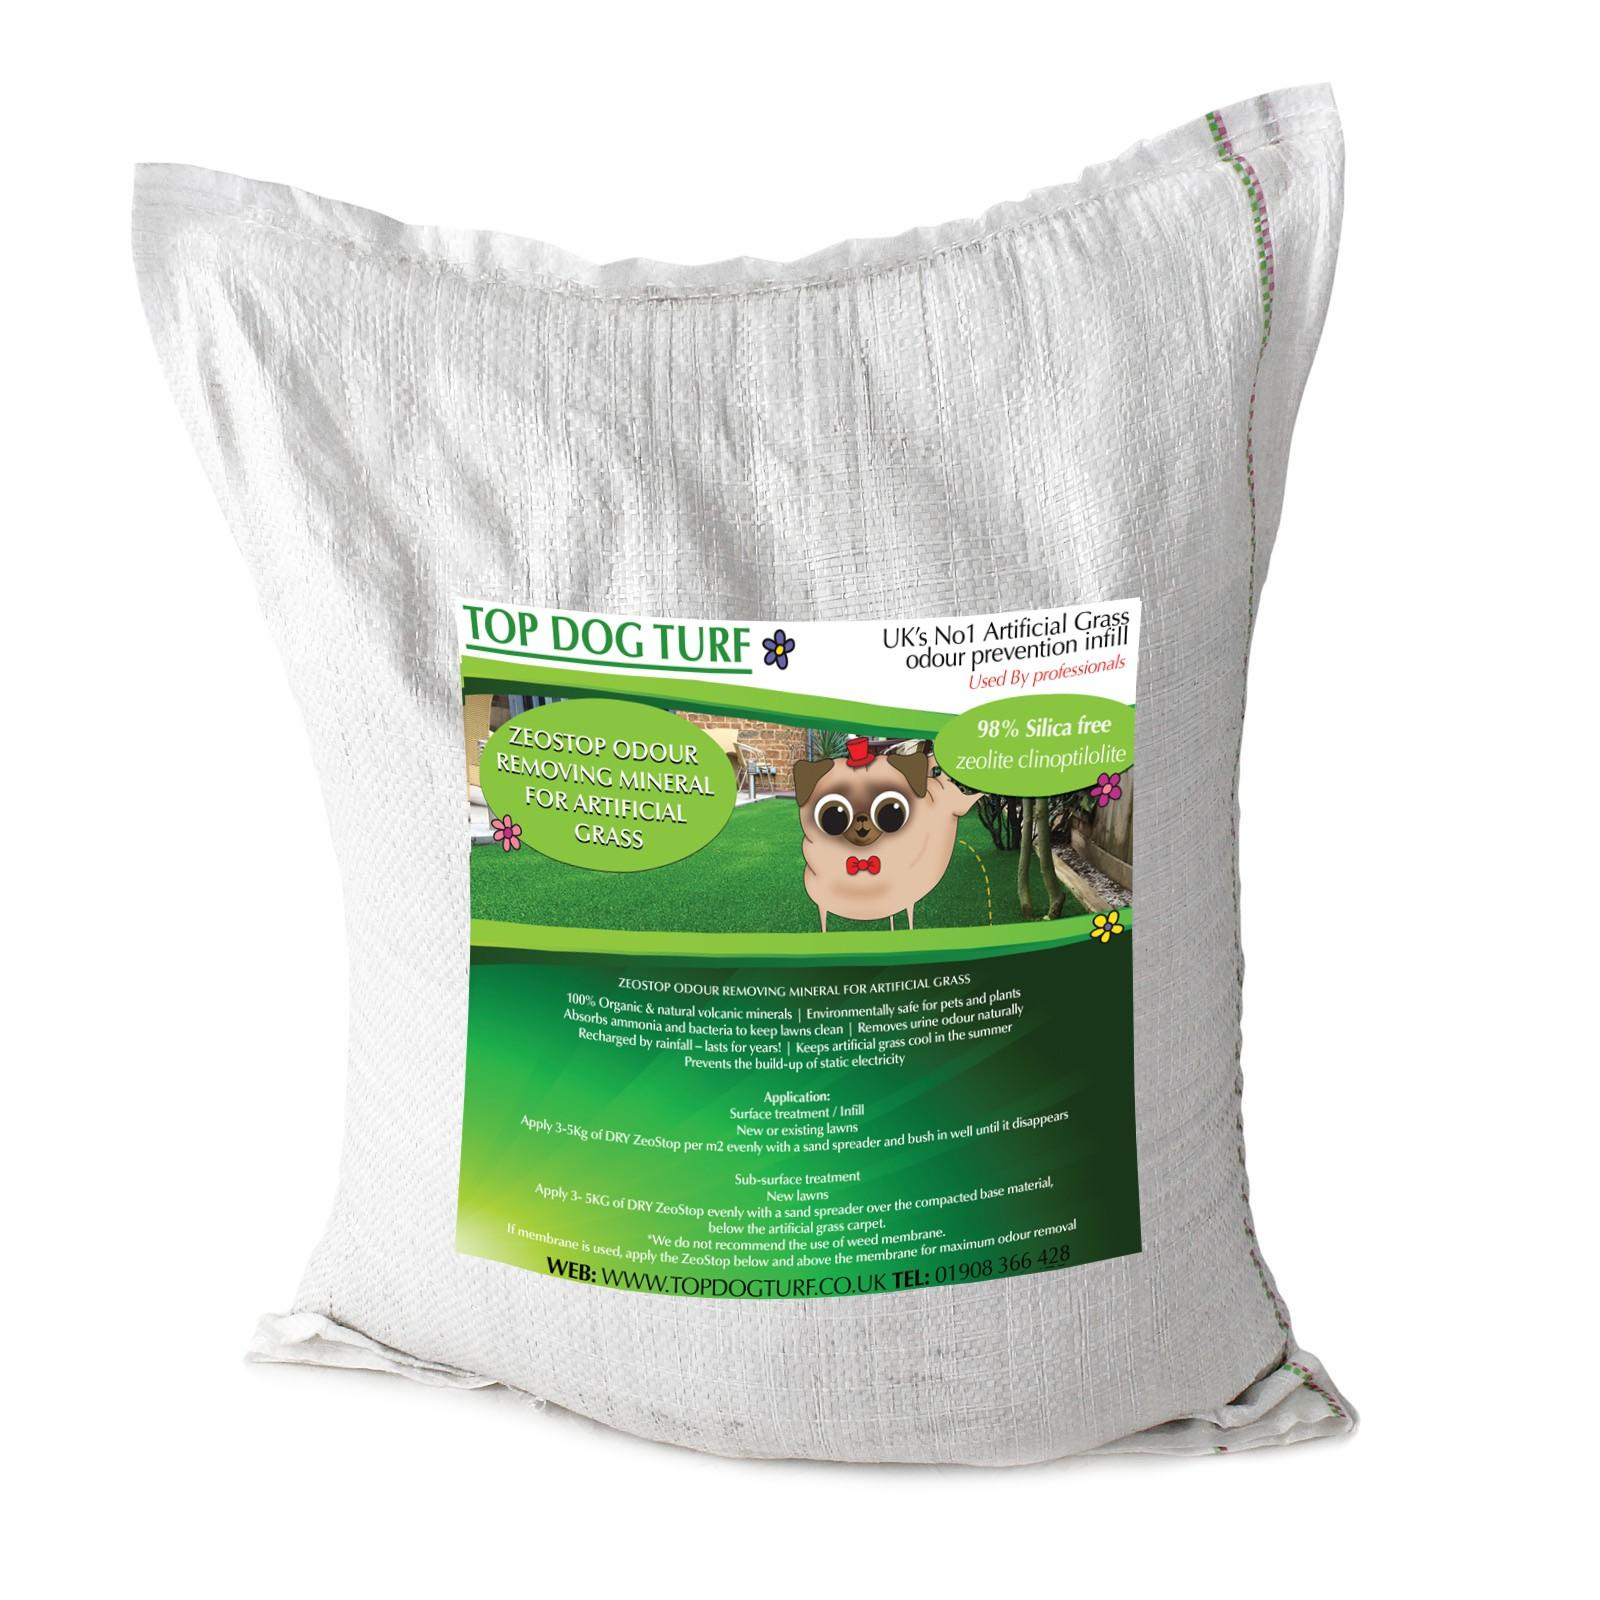 ZeoStop artificial grass deodoriser uk